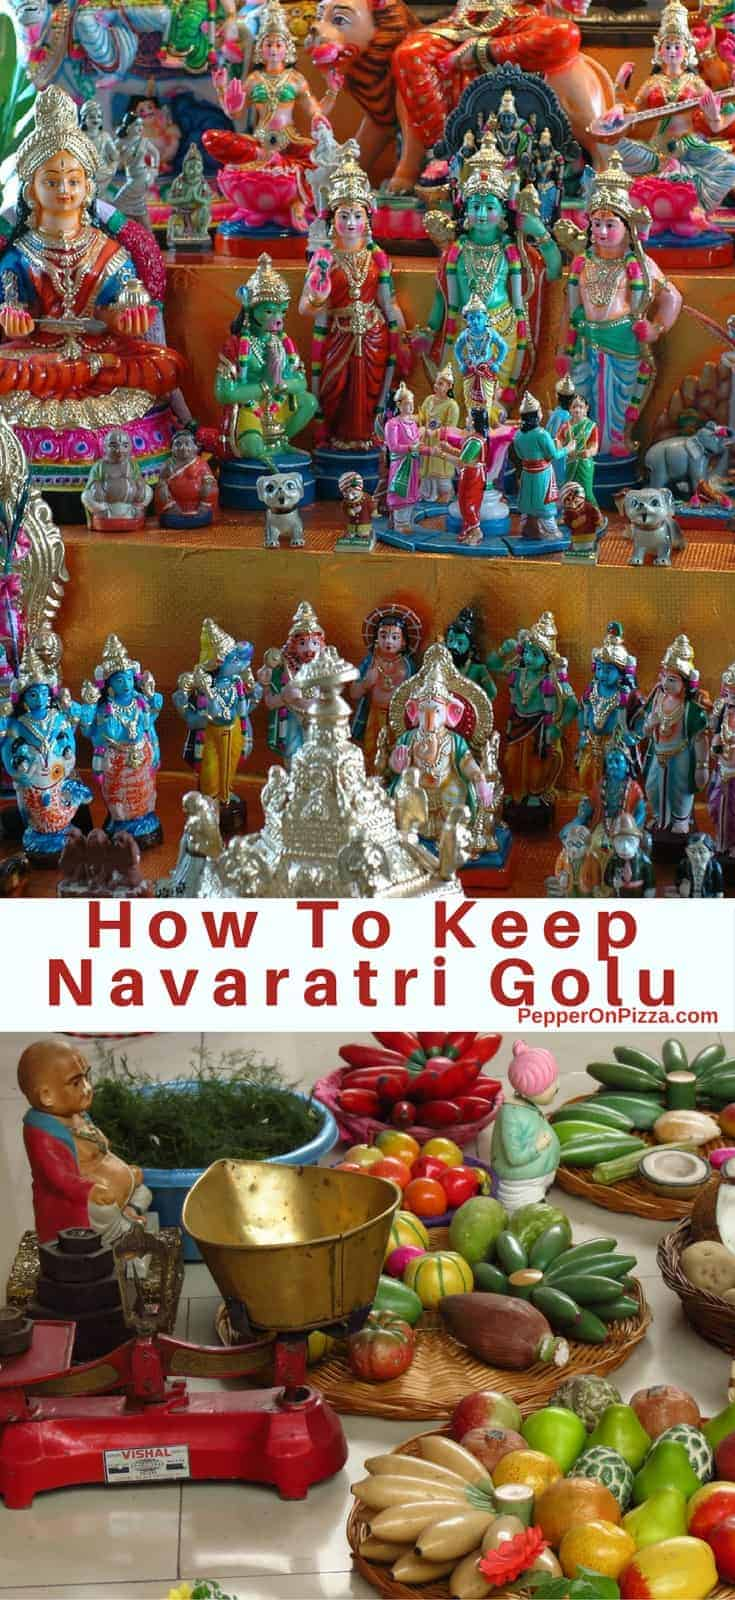 Navaratri Golu and How To Keep It, and when and how to arrange the golu dolls on the golu stand as per tradition